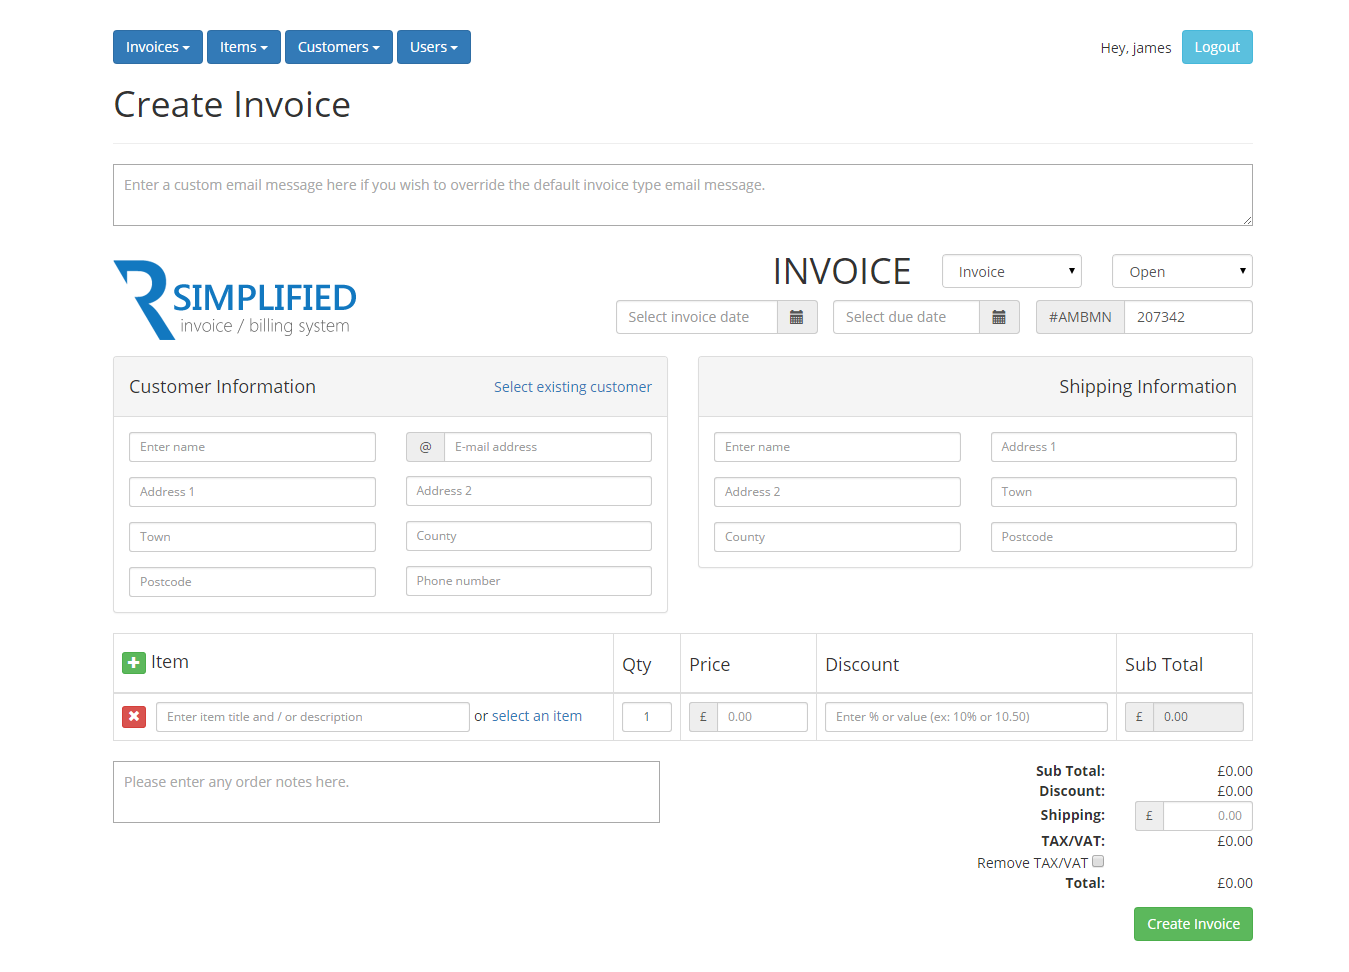 Opposenewapstandardsus  Personable Simplified Php Invoice  Billing System By Rebootdigitaluk  With Excellent  Createinvoicepng  With Adorable Invoice Sample Australia Also Proforma Invoice Template Free In Addition Invoice Format In Doc And Copy Of An Invoice Template As Well As Easy Invoice App Additionally Tax Invoice Template Nz From Codecanyonnet With Opposenewapstandardsus  Excellent Simplified Php Invoice  Billing System By Rebootdigitaluk  With Adorable  Createinvoicepng  And Personable Invoice Sample Australia Also Proforma Invoice Template Free In Addition Invoice Format In Doc From Codecanyonnet